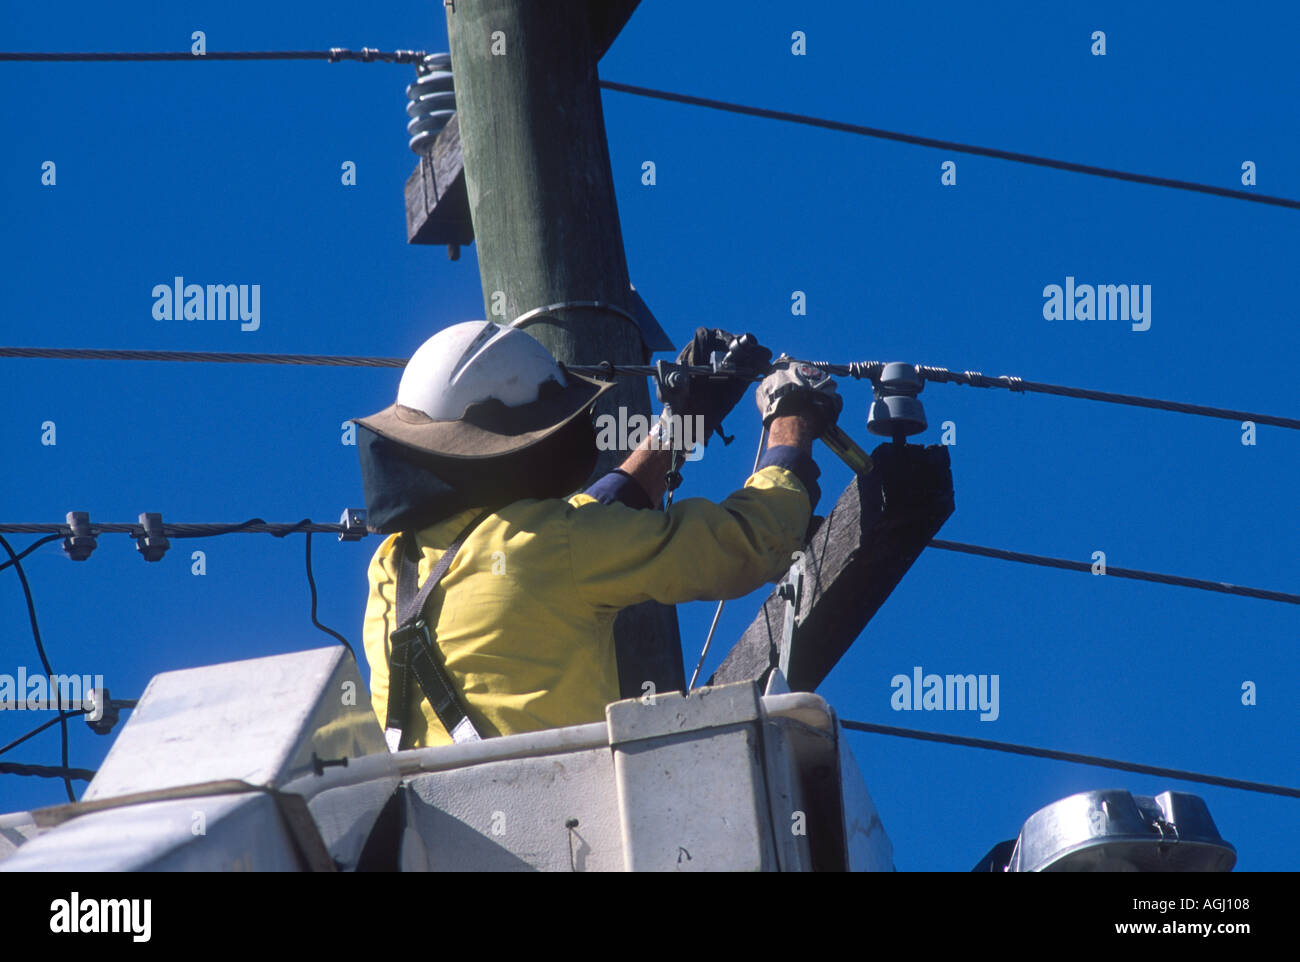 electricity-worker-in-elevated-work-platform-fixing-powerlines-AGJ108.jpg